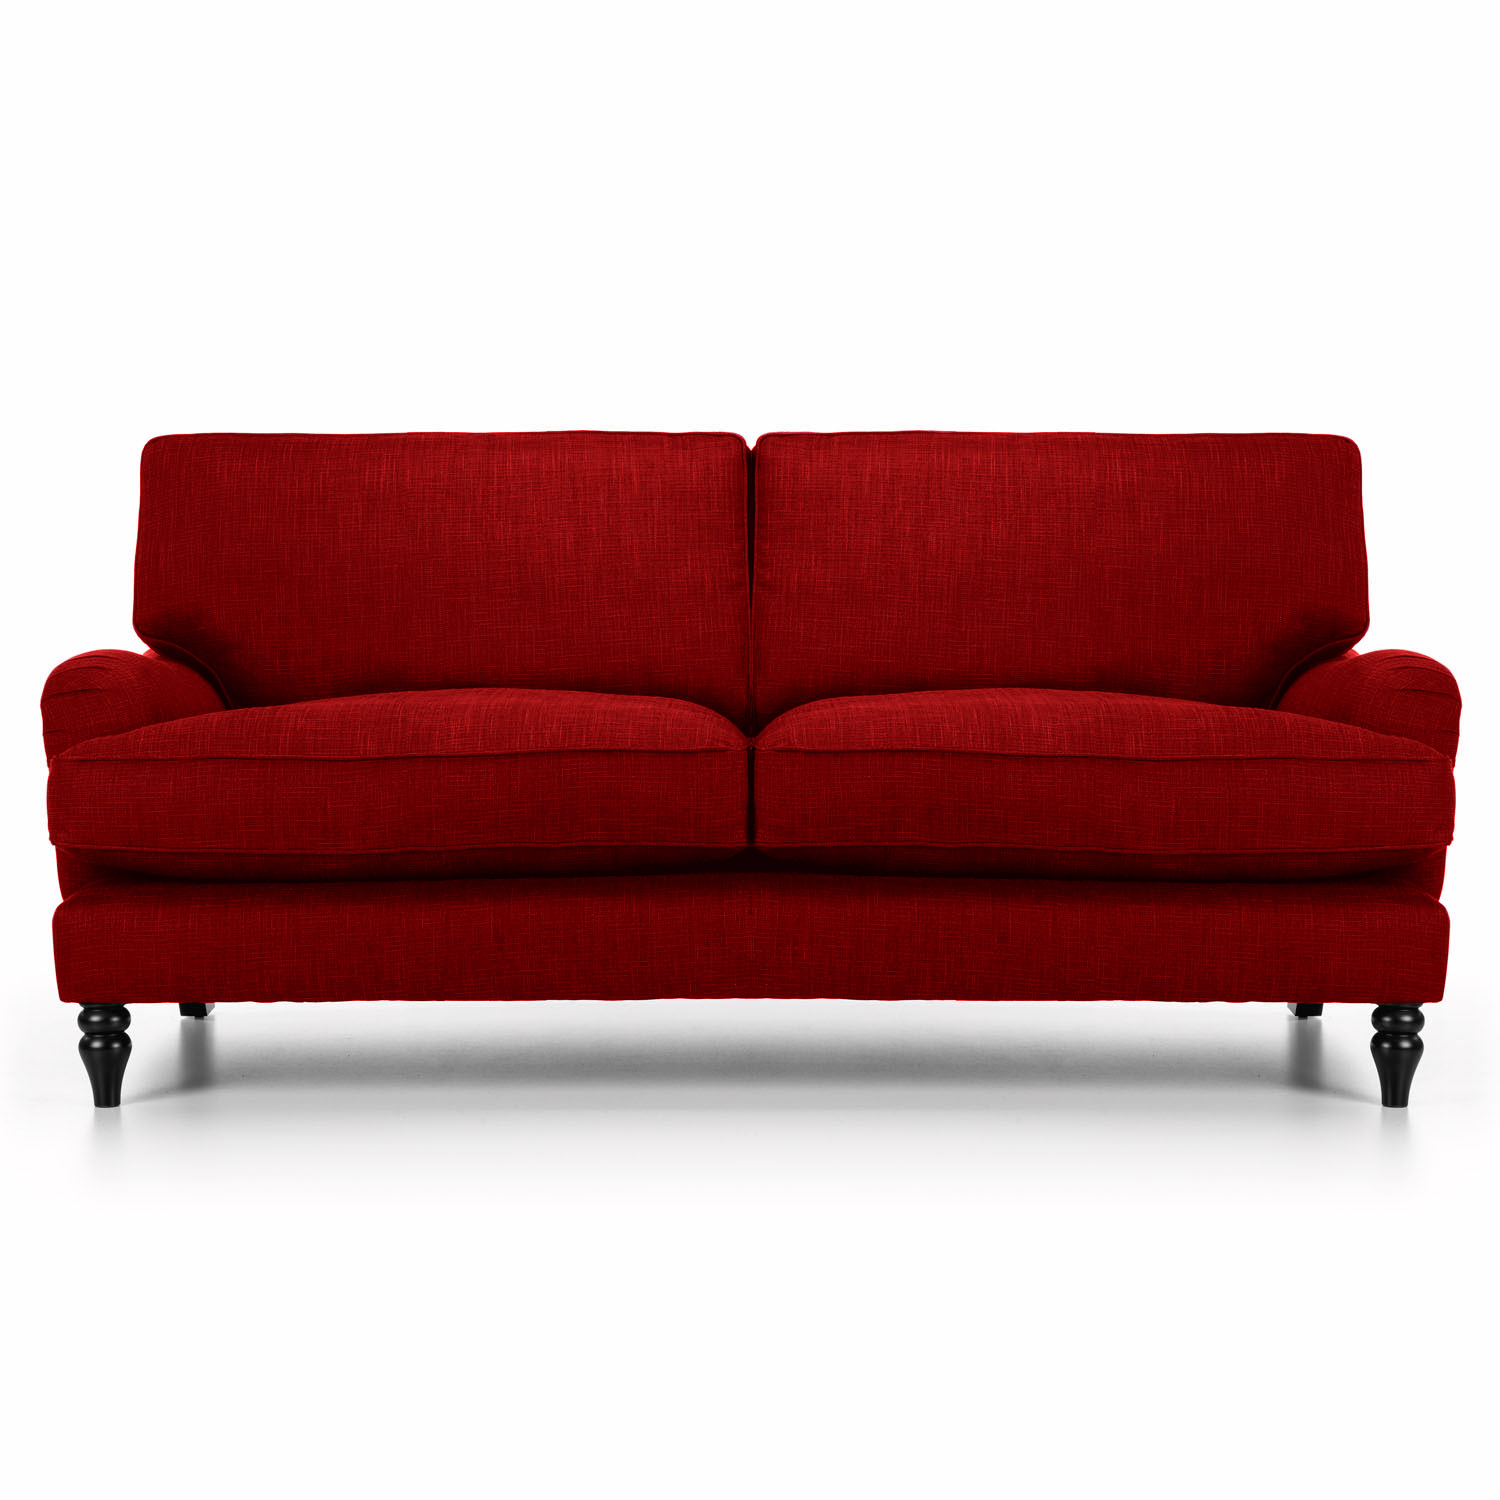 best sofa companies design sectional monza 3 seater victoria postbox wenge contemporary